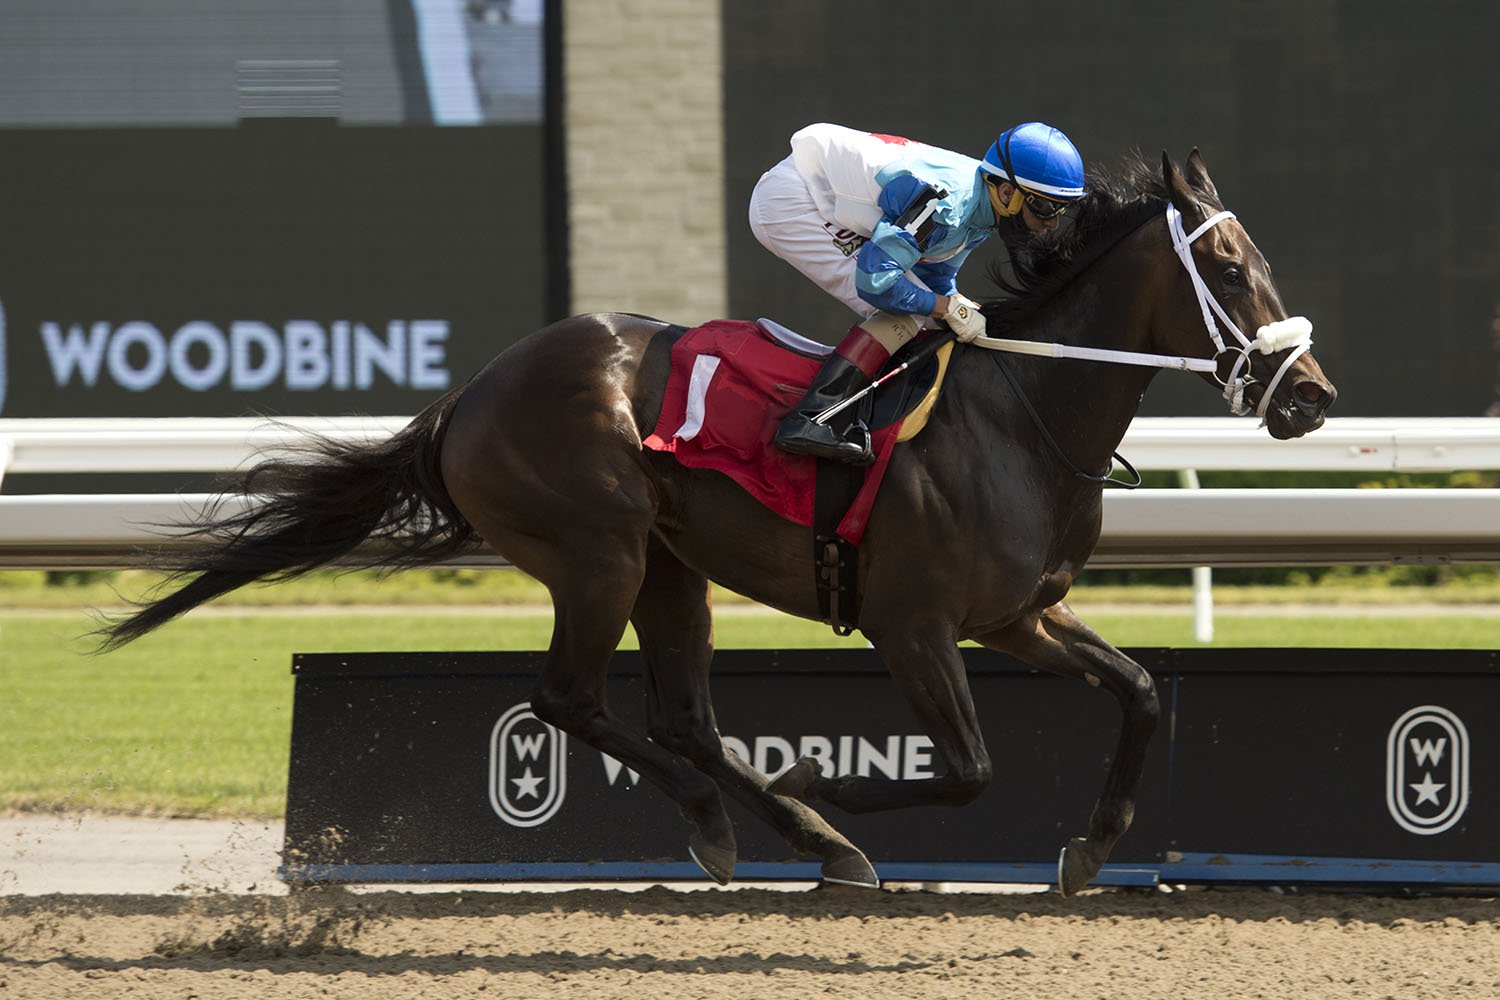 Samurai Queen winning her first start of 2020 on June 19 at Woodbine Racetrack. (Michael Burns Photo)